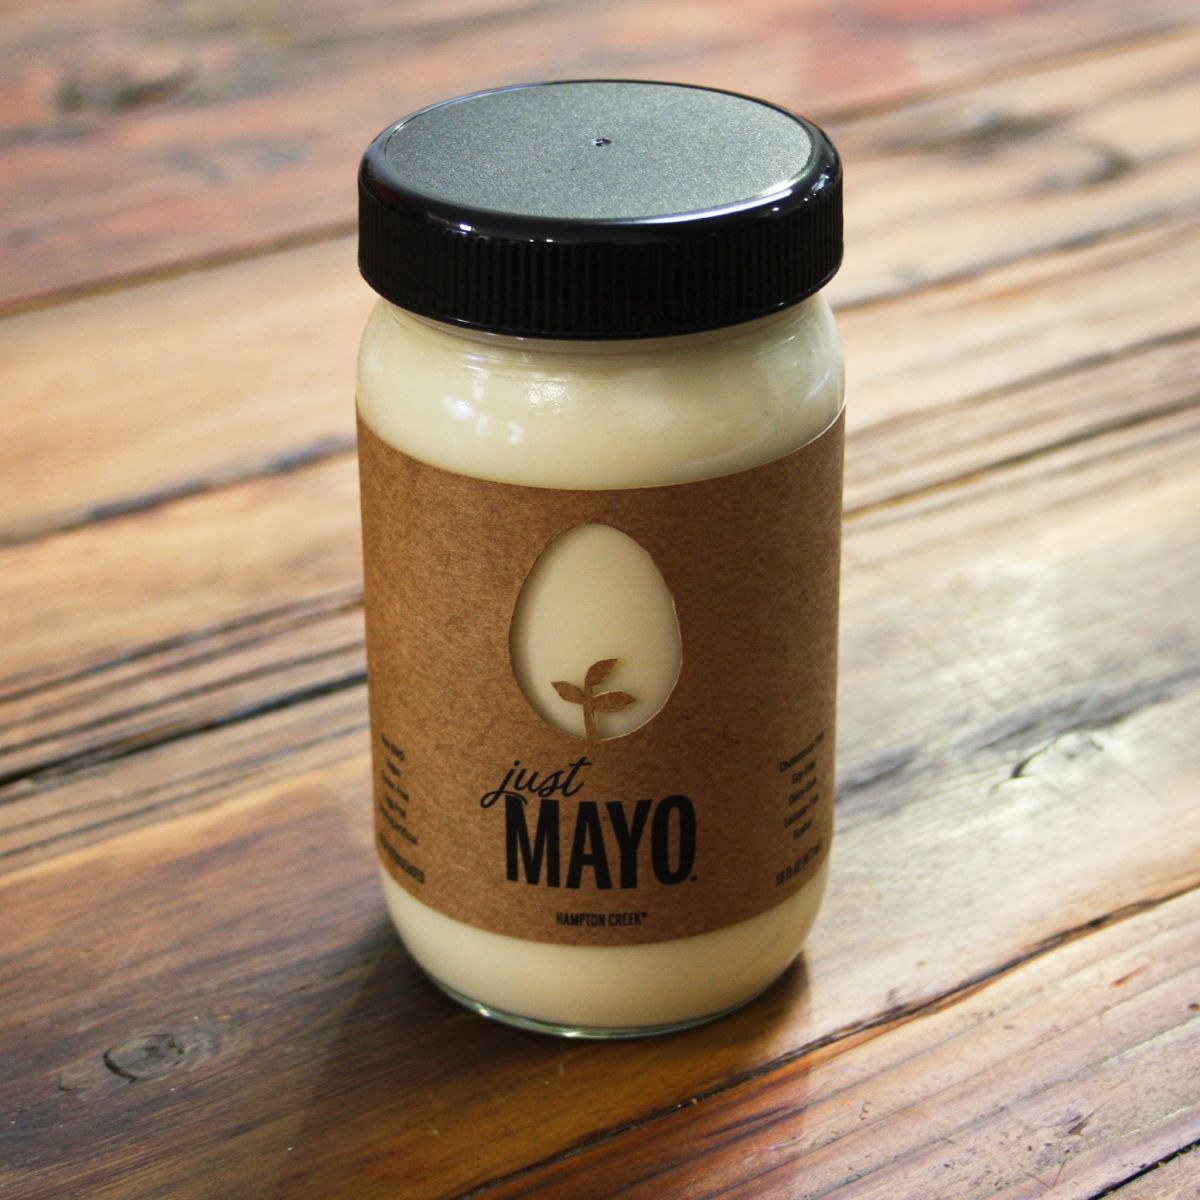 Hampton Creek Defends Just Mayo Against FDA Warning